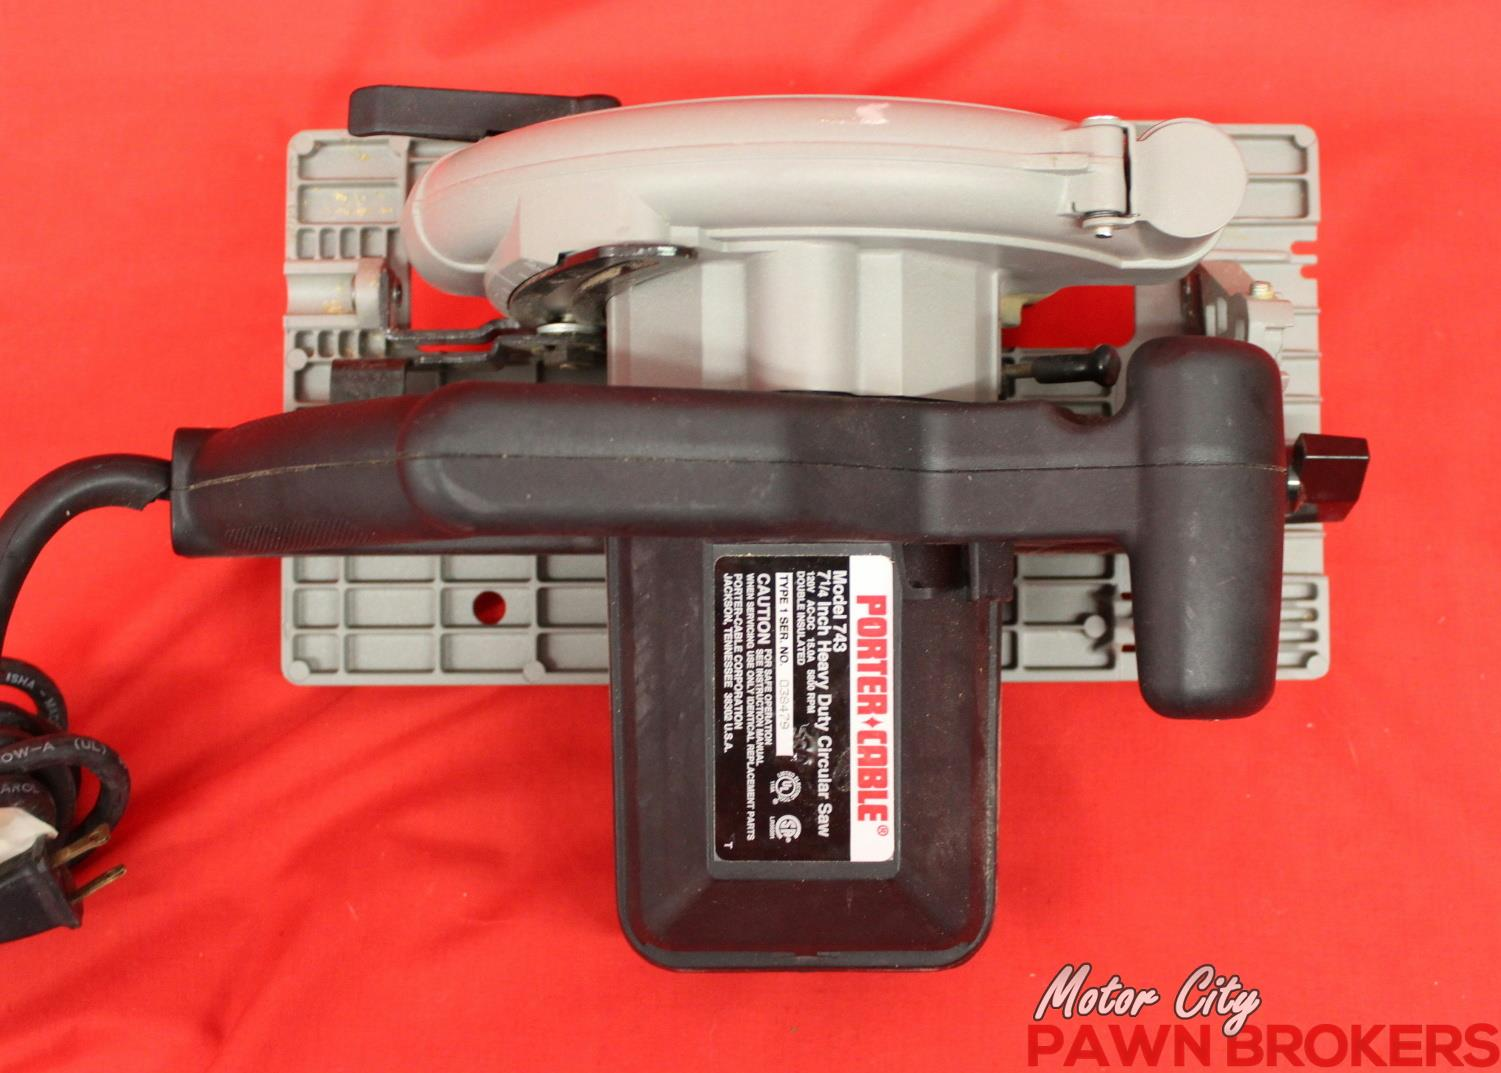 Porter cable 743 left blade 7 1 4 blade 5800 rpm for Motor city pawn shop